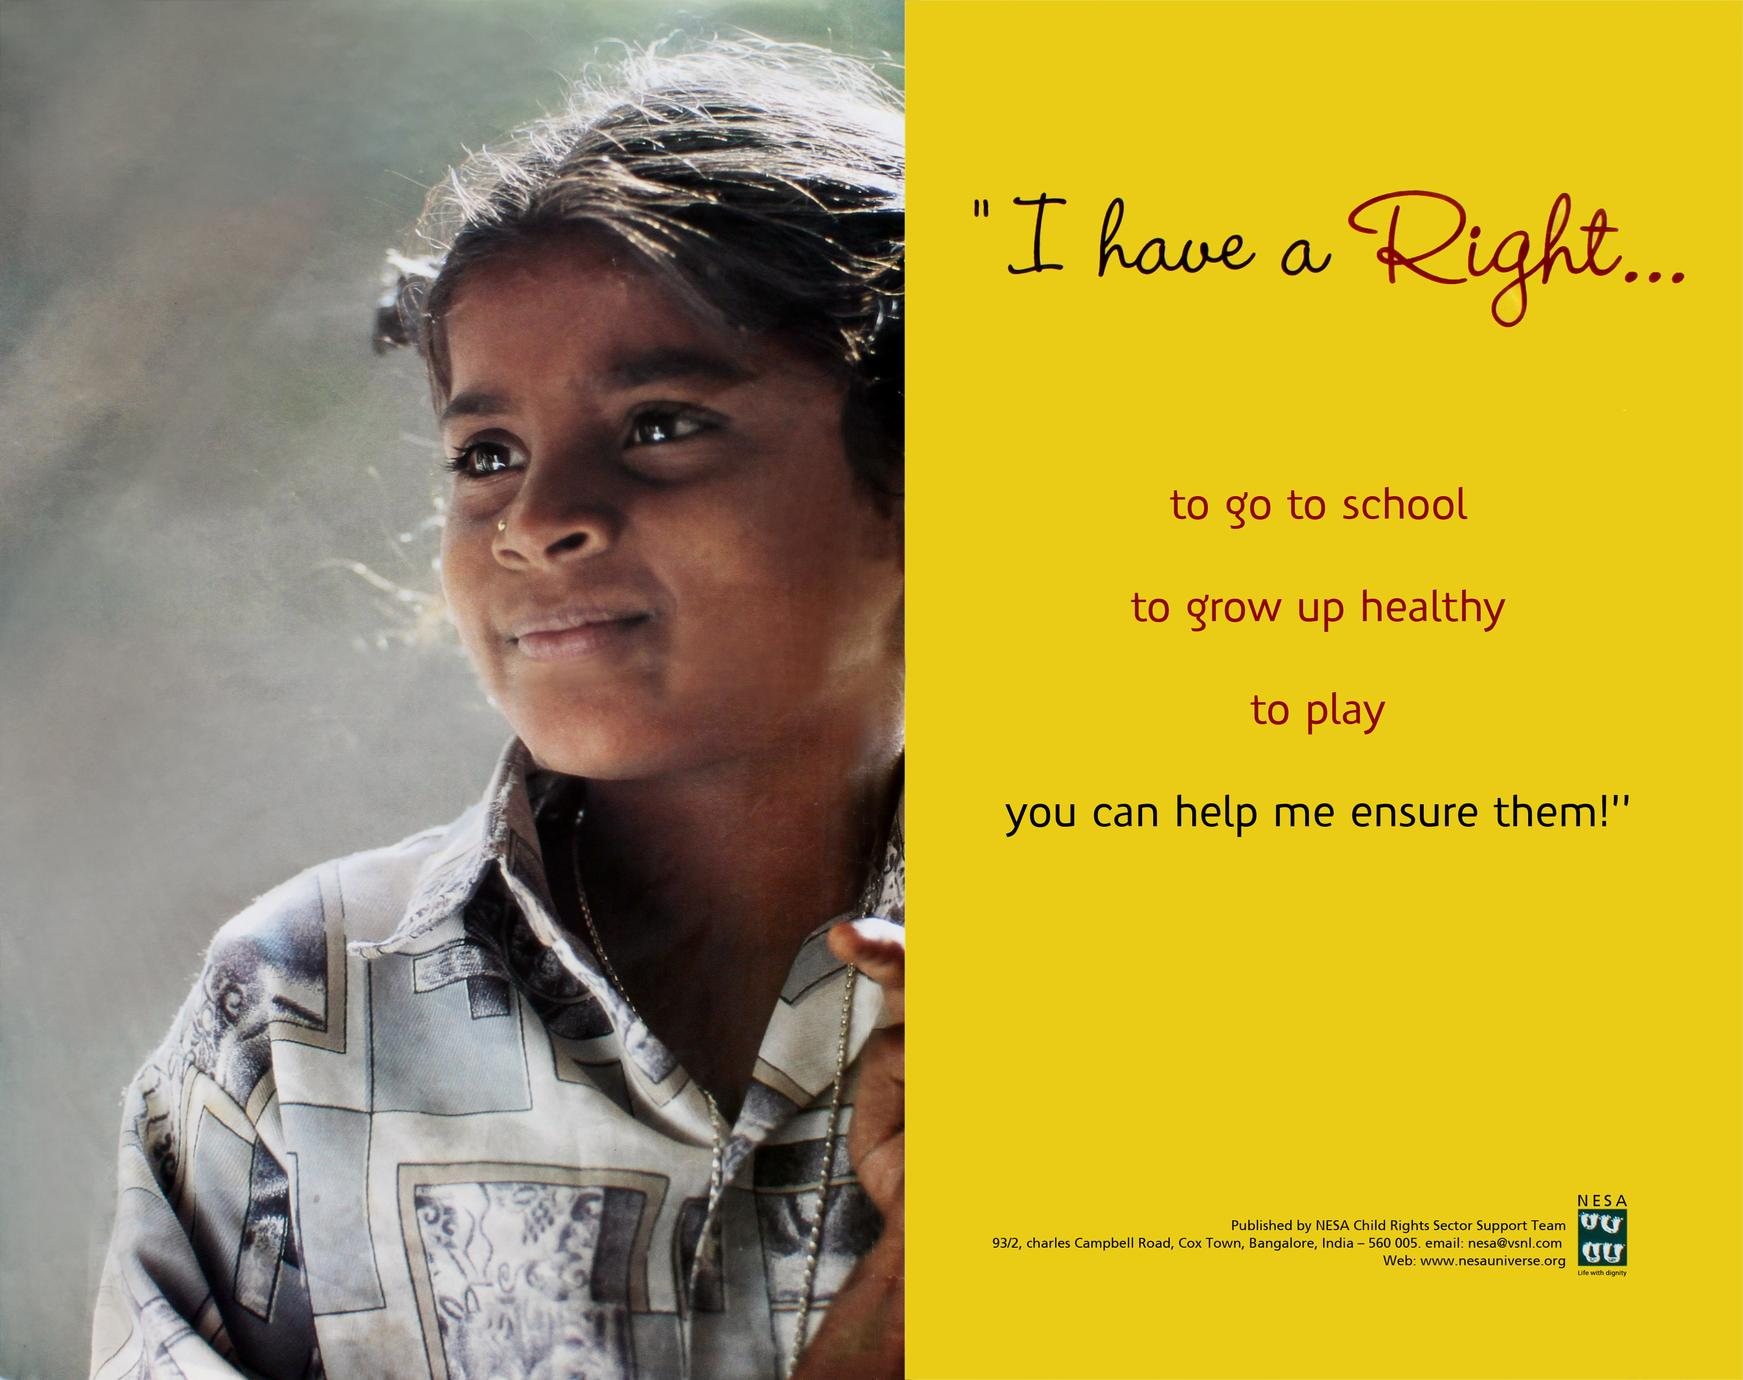 I have a right to go school, to grow up healthy, to play. You can help me ensure them!